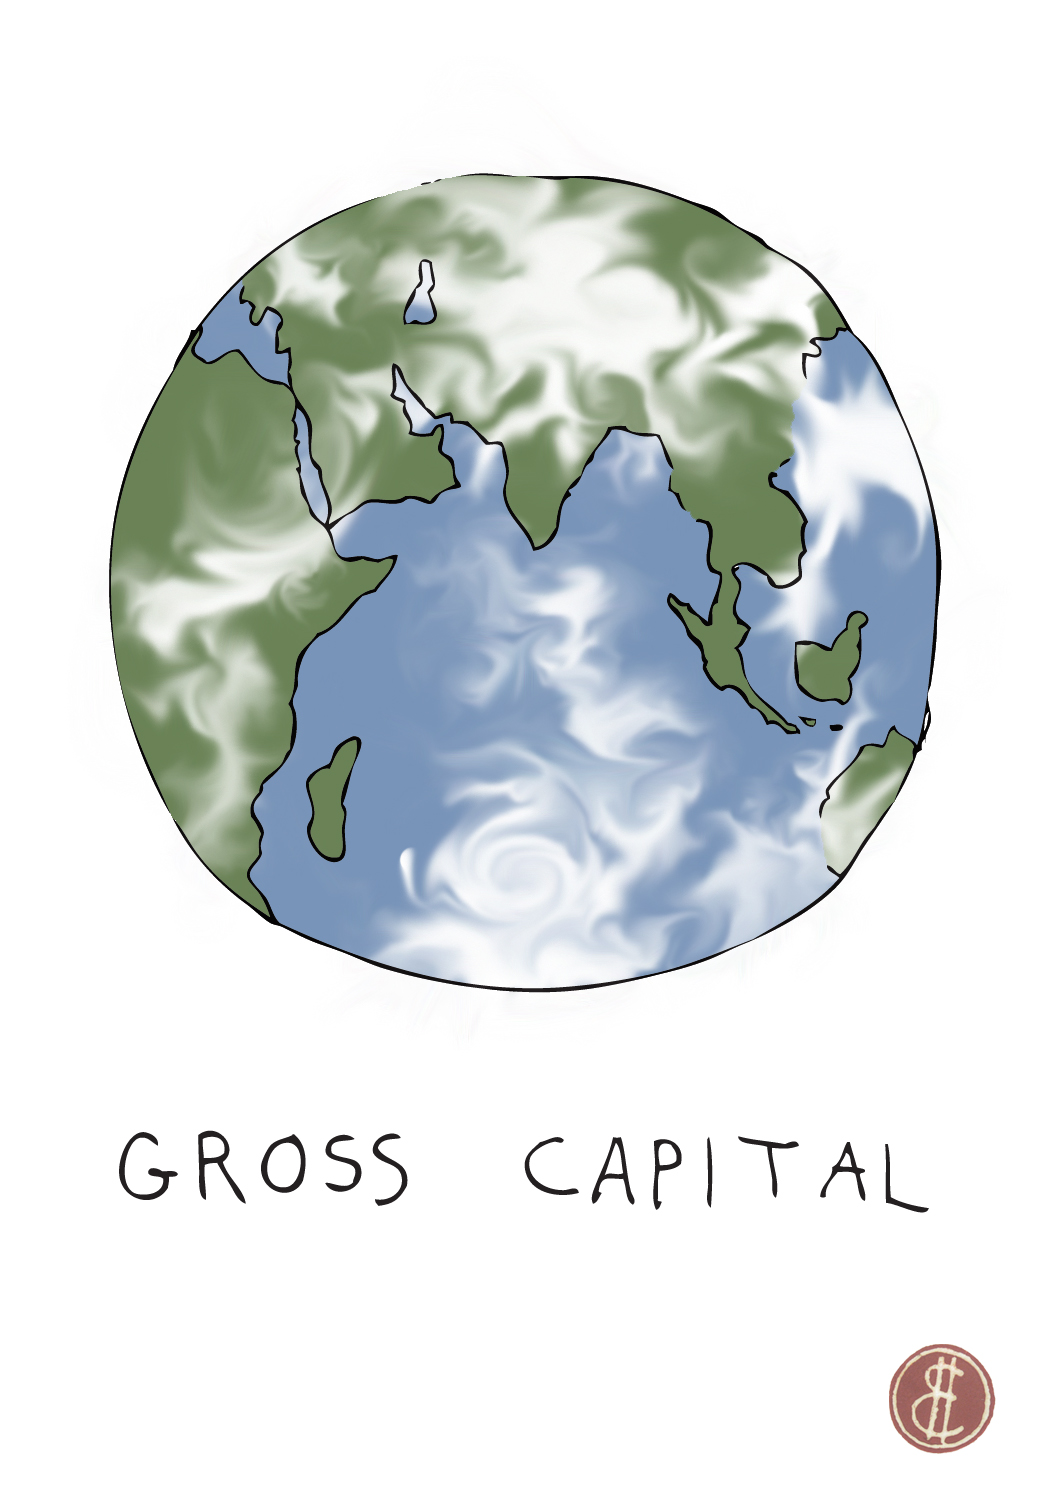 Gross capital